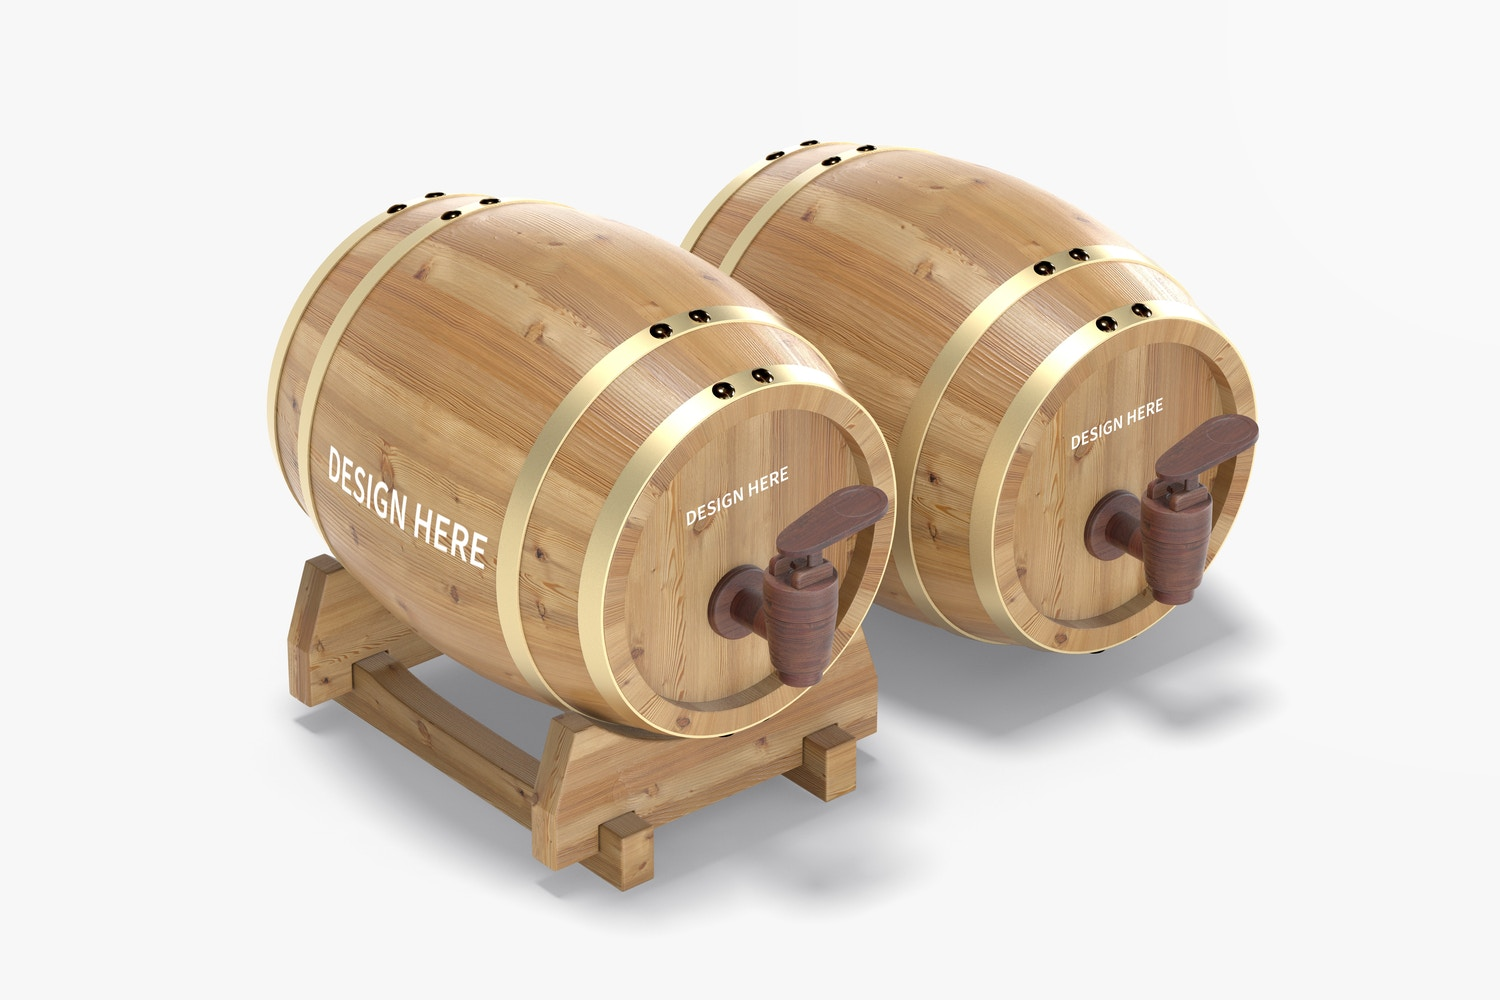 Wooden Barrels on Stand Mockup, Right View